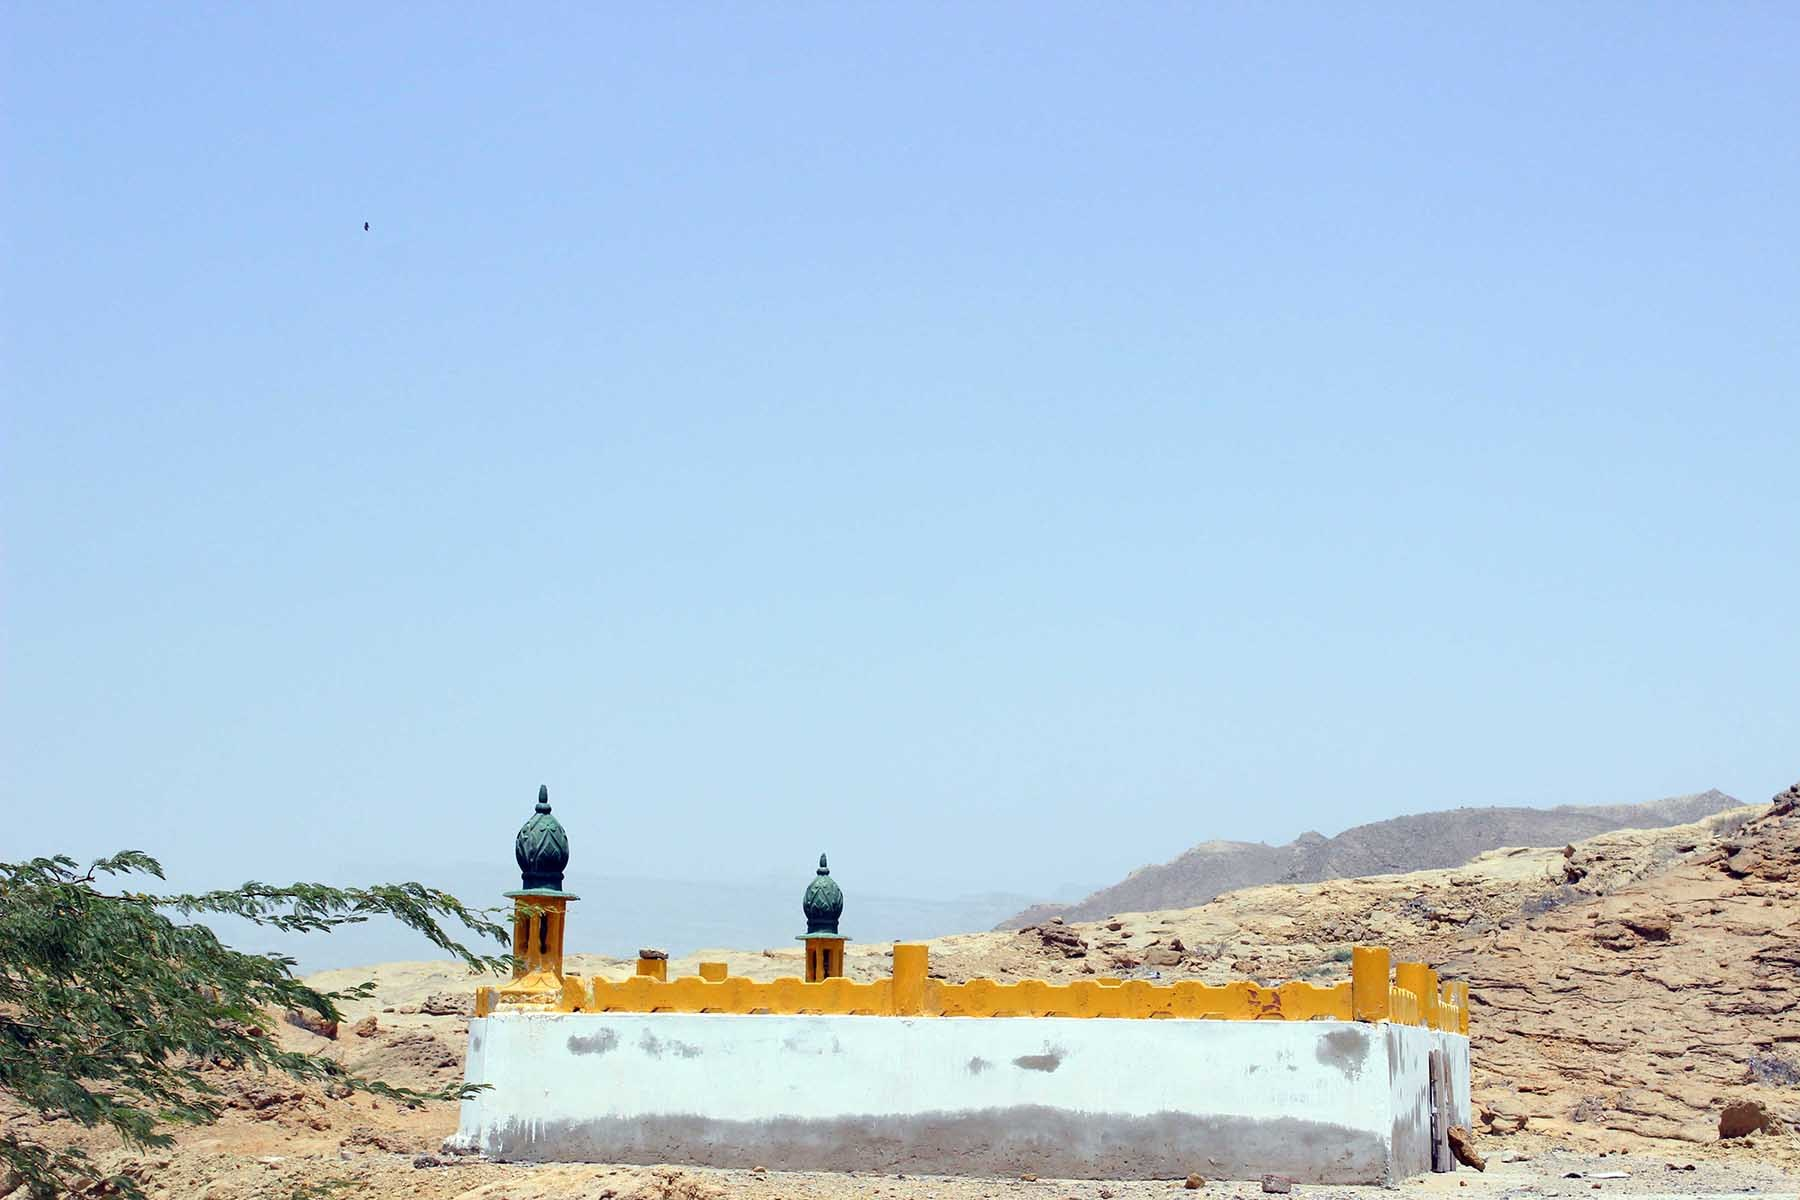 A very small mosque named Mohammad Bin Qasim, in his memory.